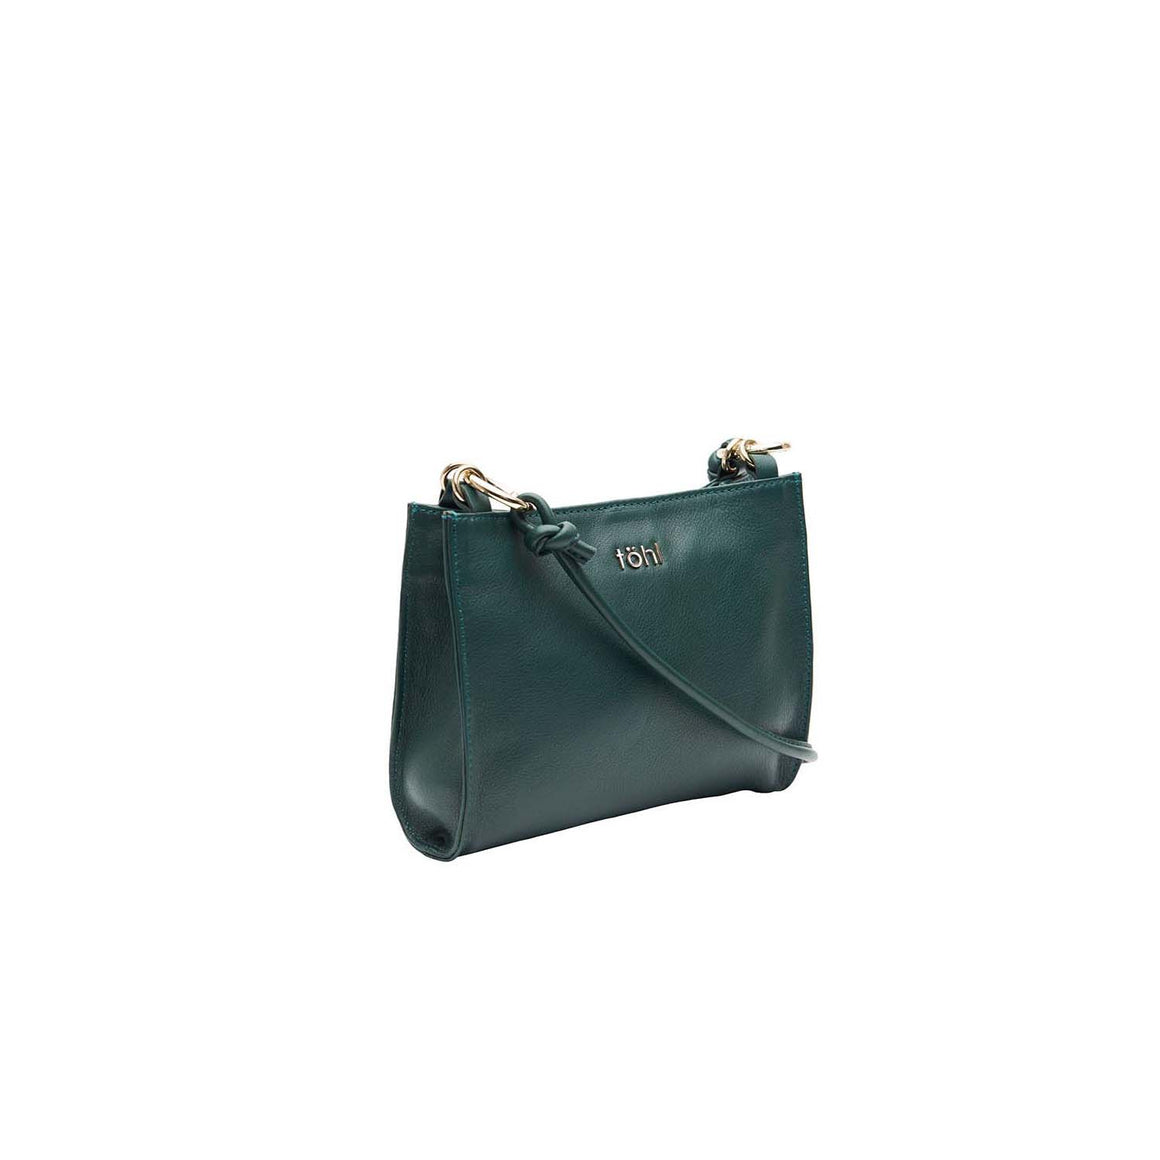 SG 0028 - TOHL BAYLIS WOMEN'S SLING & CROSSBODY BAG - FOREST GREEN